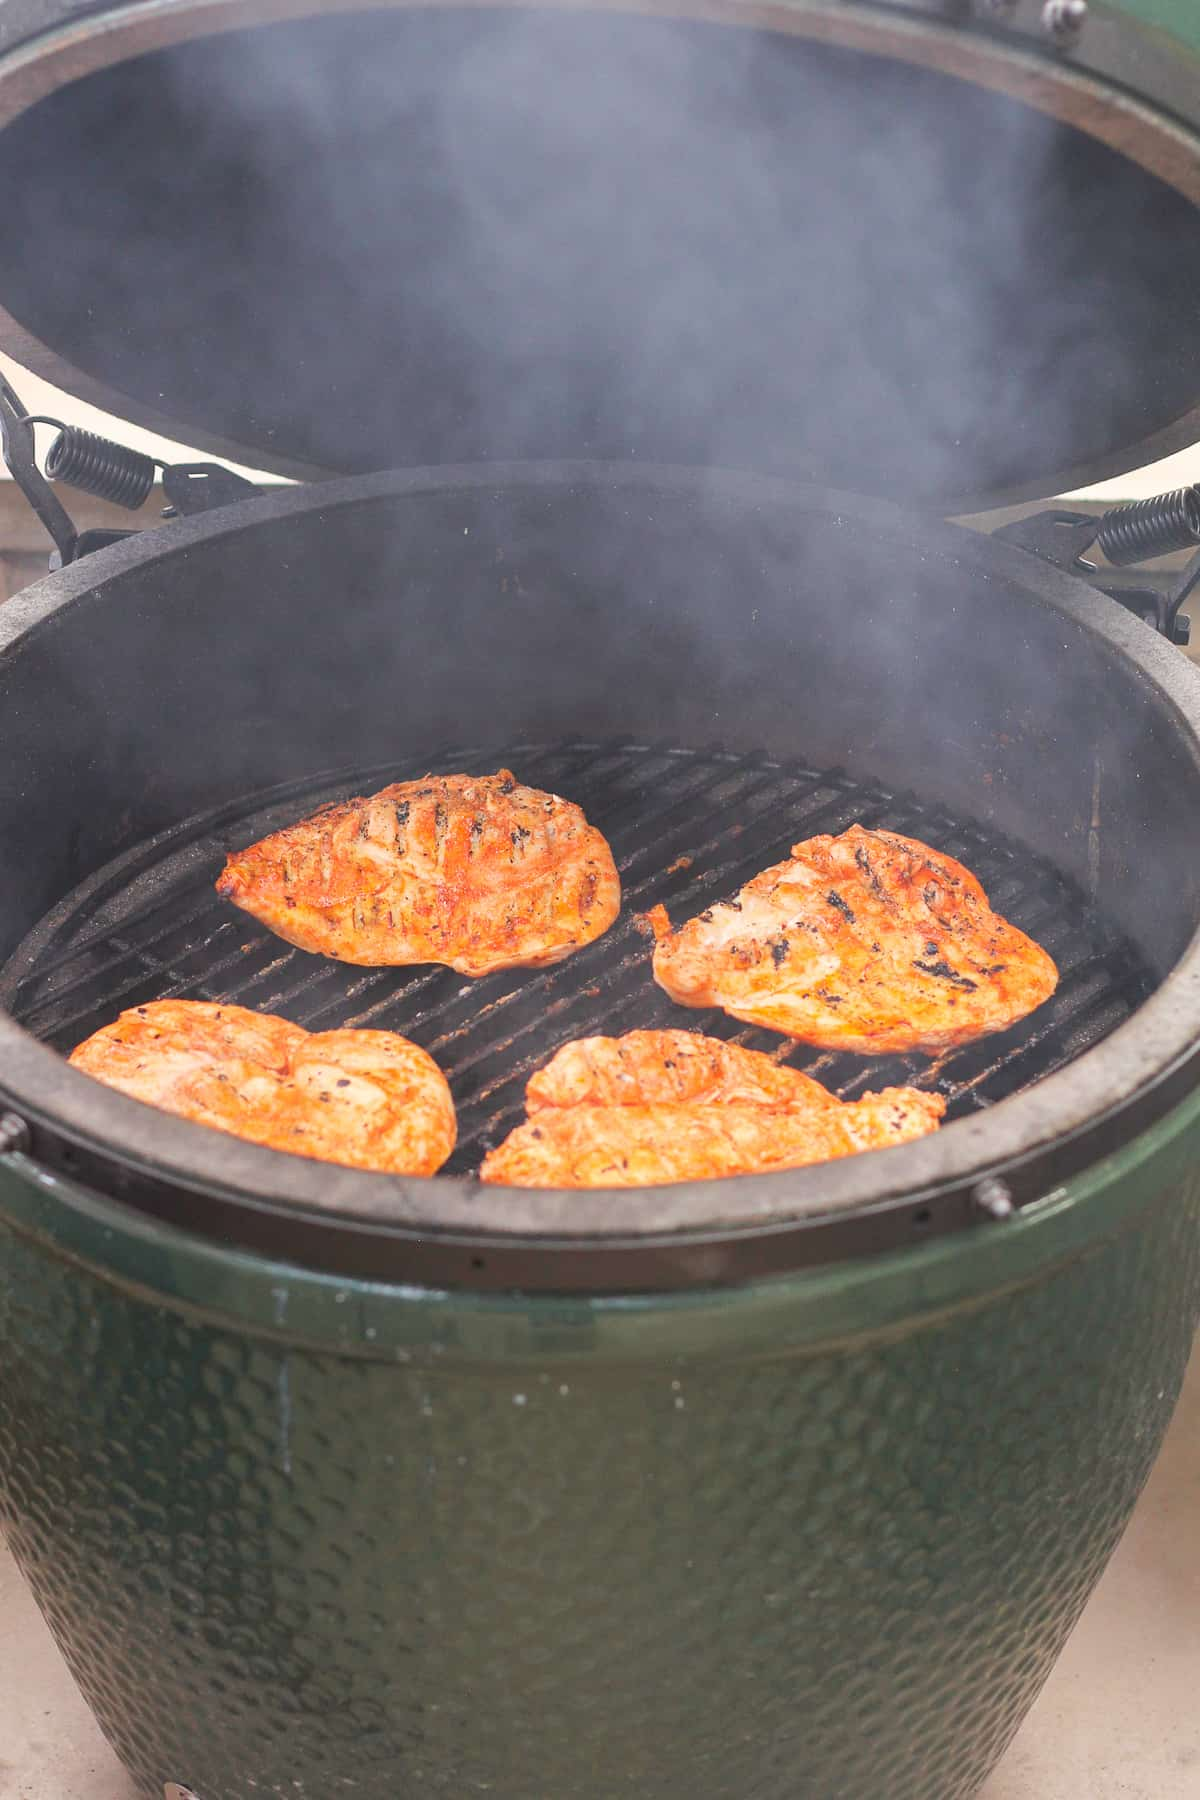 A big green egg with the chicken breasts.